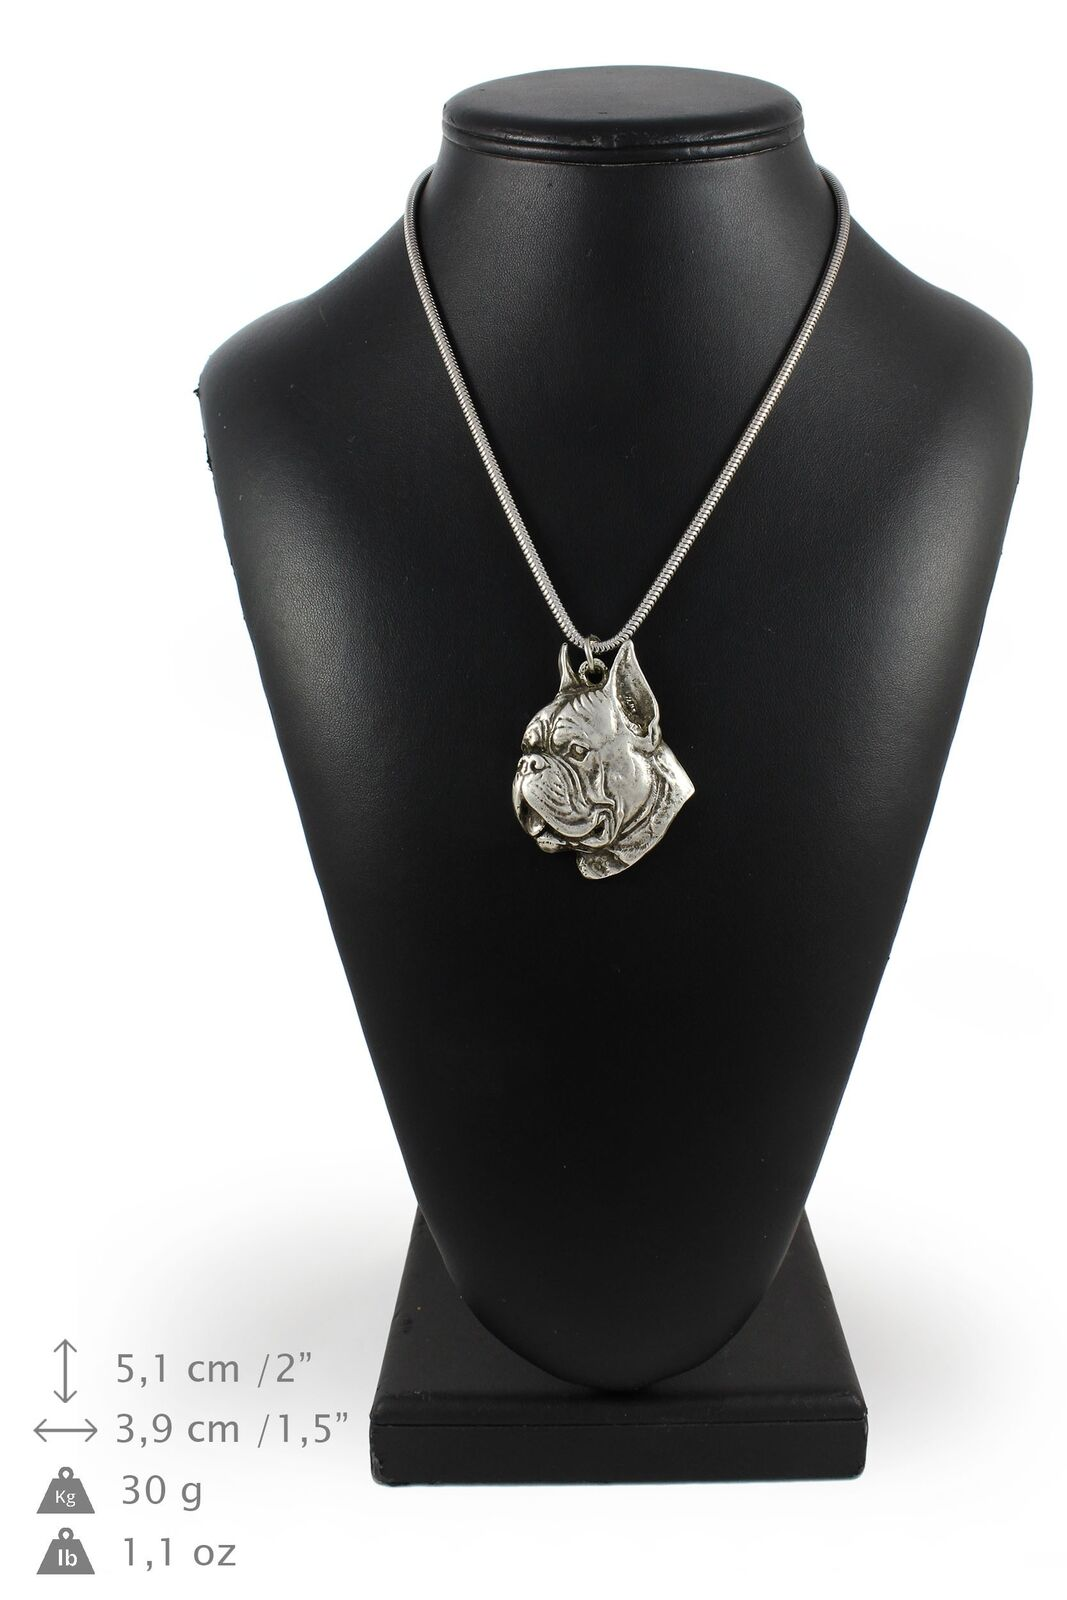 Boxer type 3 - Silber coverot necklace with Silber chain, Art Dog